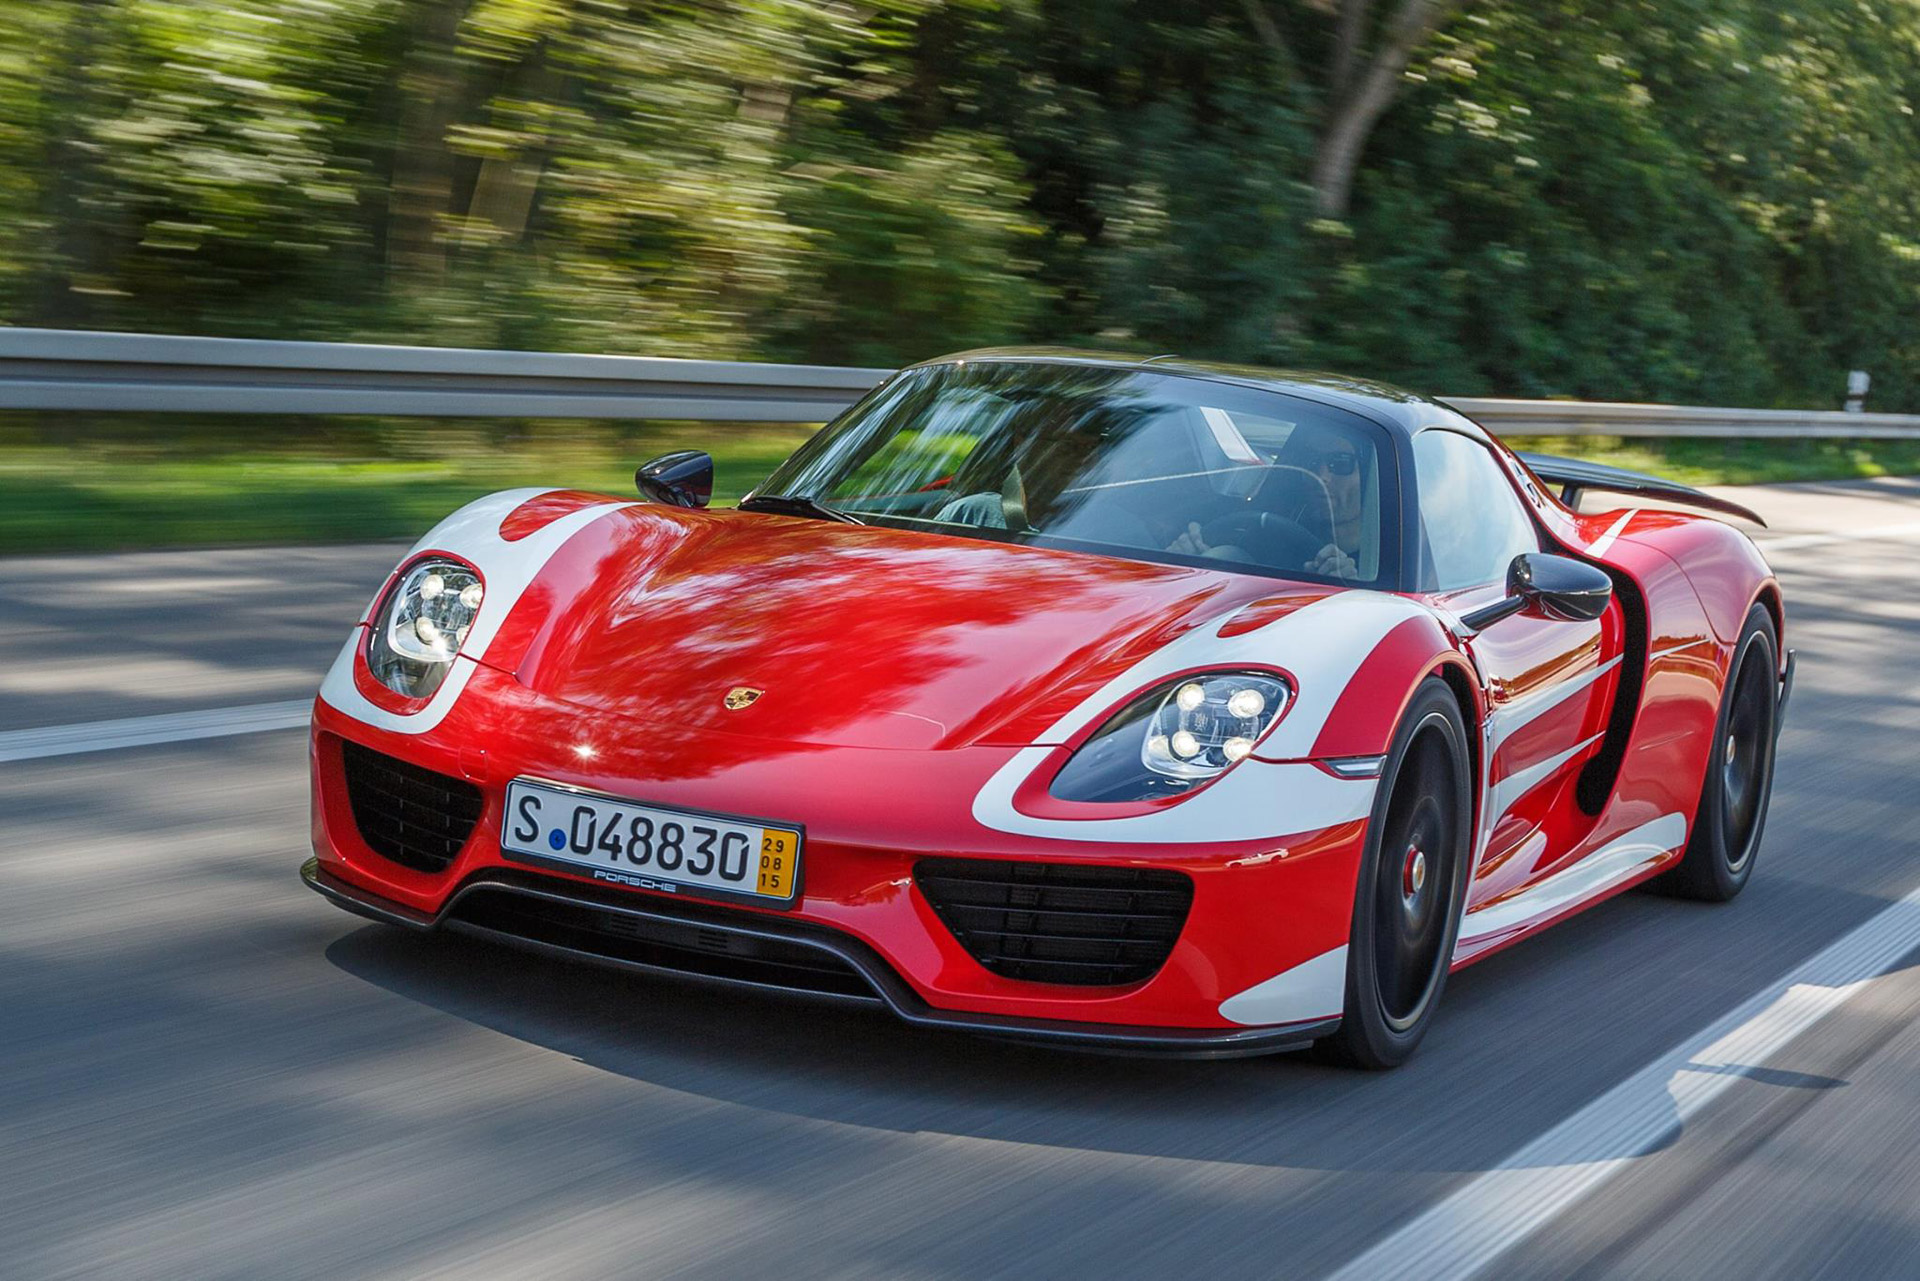 mark-webber-takes-delivery-of-a-porsche-918-spyder_100524702_h Marvelous Porsche 918 Spyder Mark Webber Cars Trend